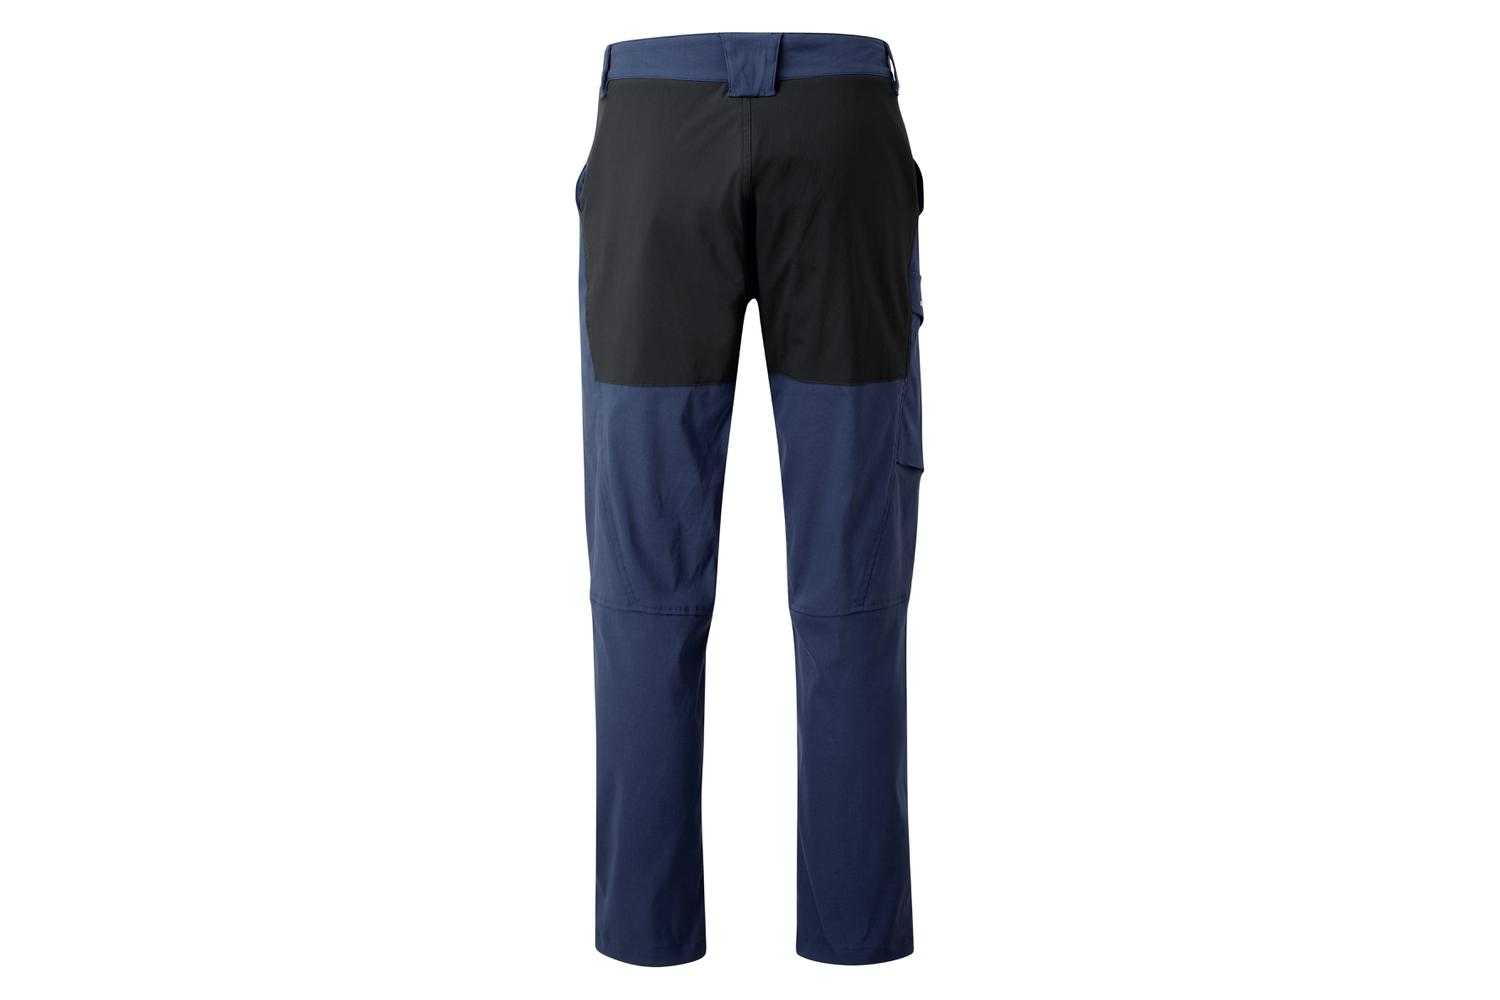 Gill Heren Race Trousers Donker blauw 34